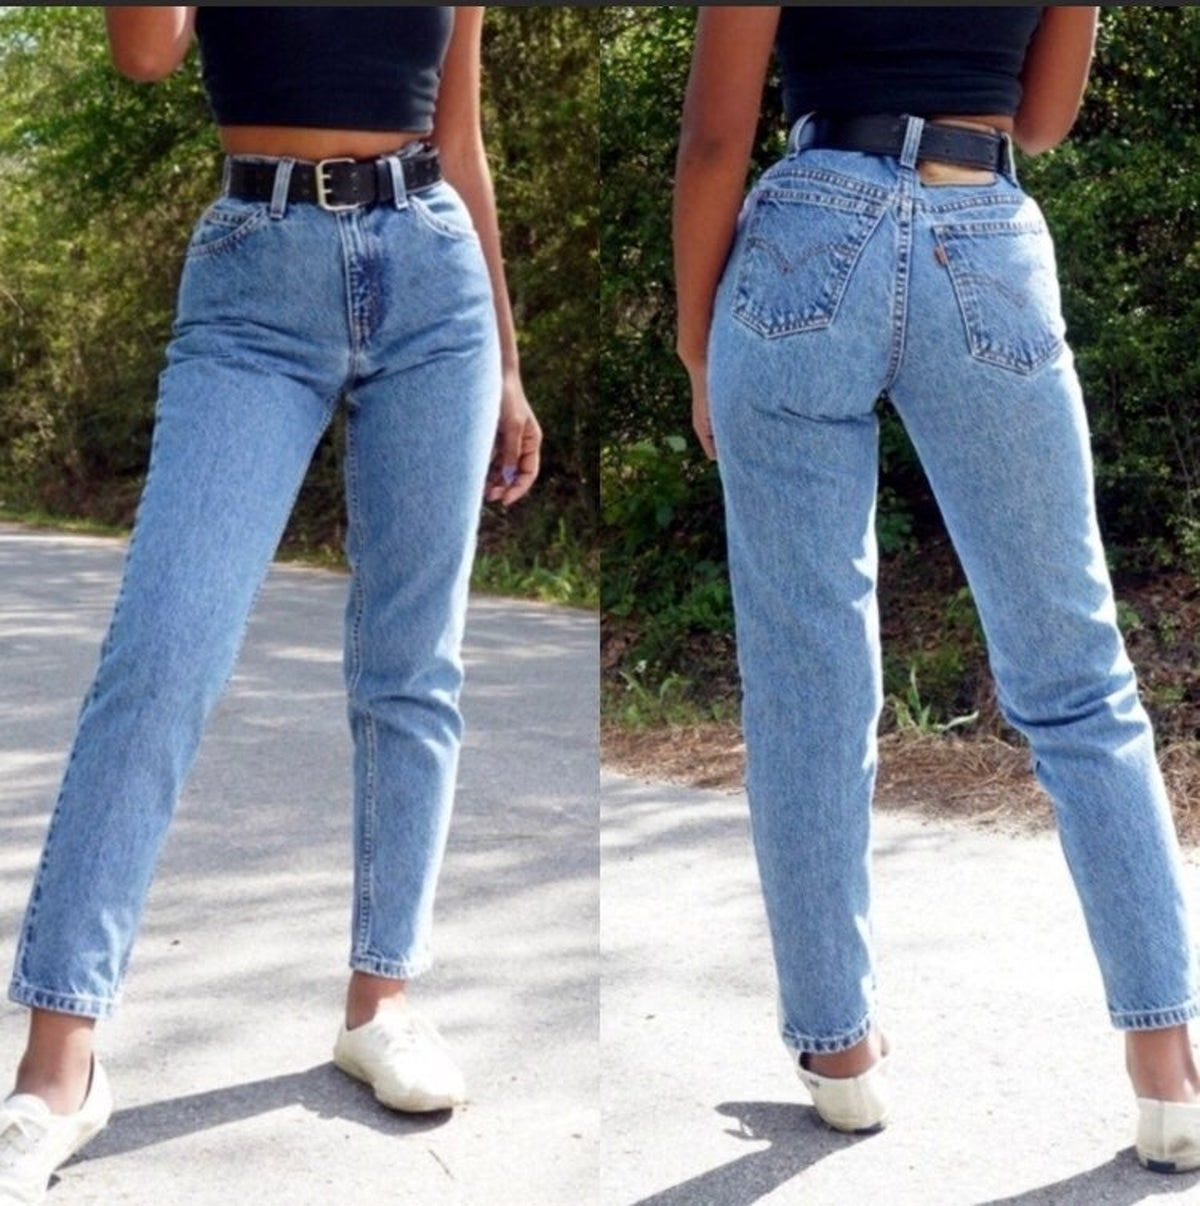 Vintage Levi S Mom Jeans In 2020 Mom Jeans Outfit Levi Jeans Women Jeans Outfit Women